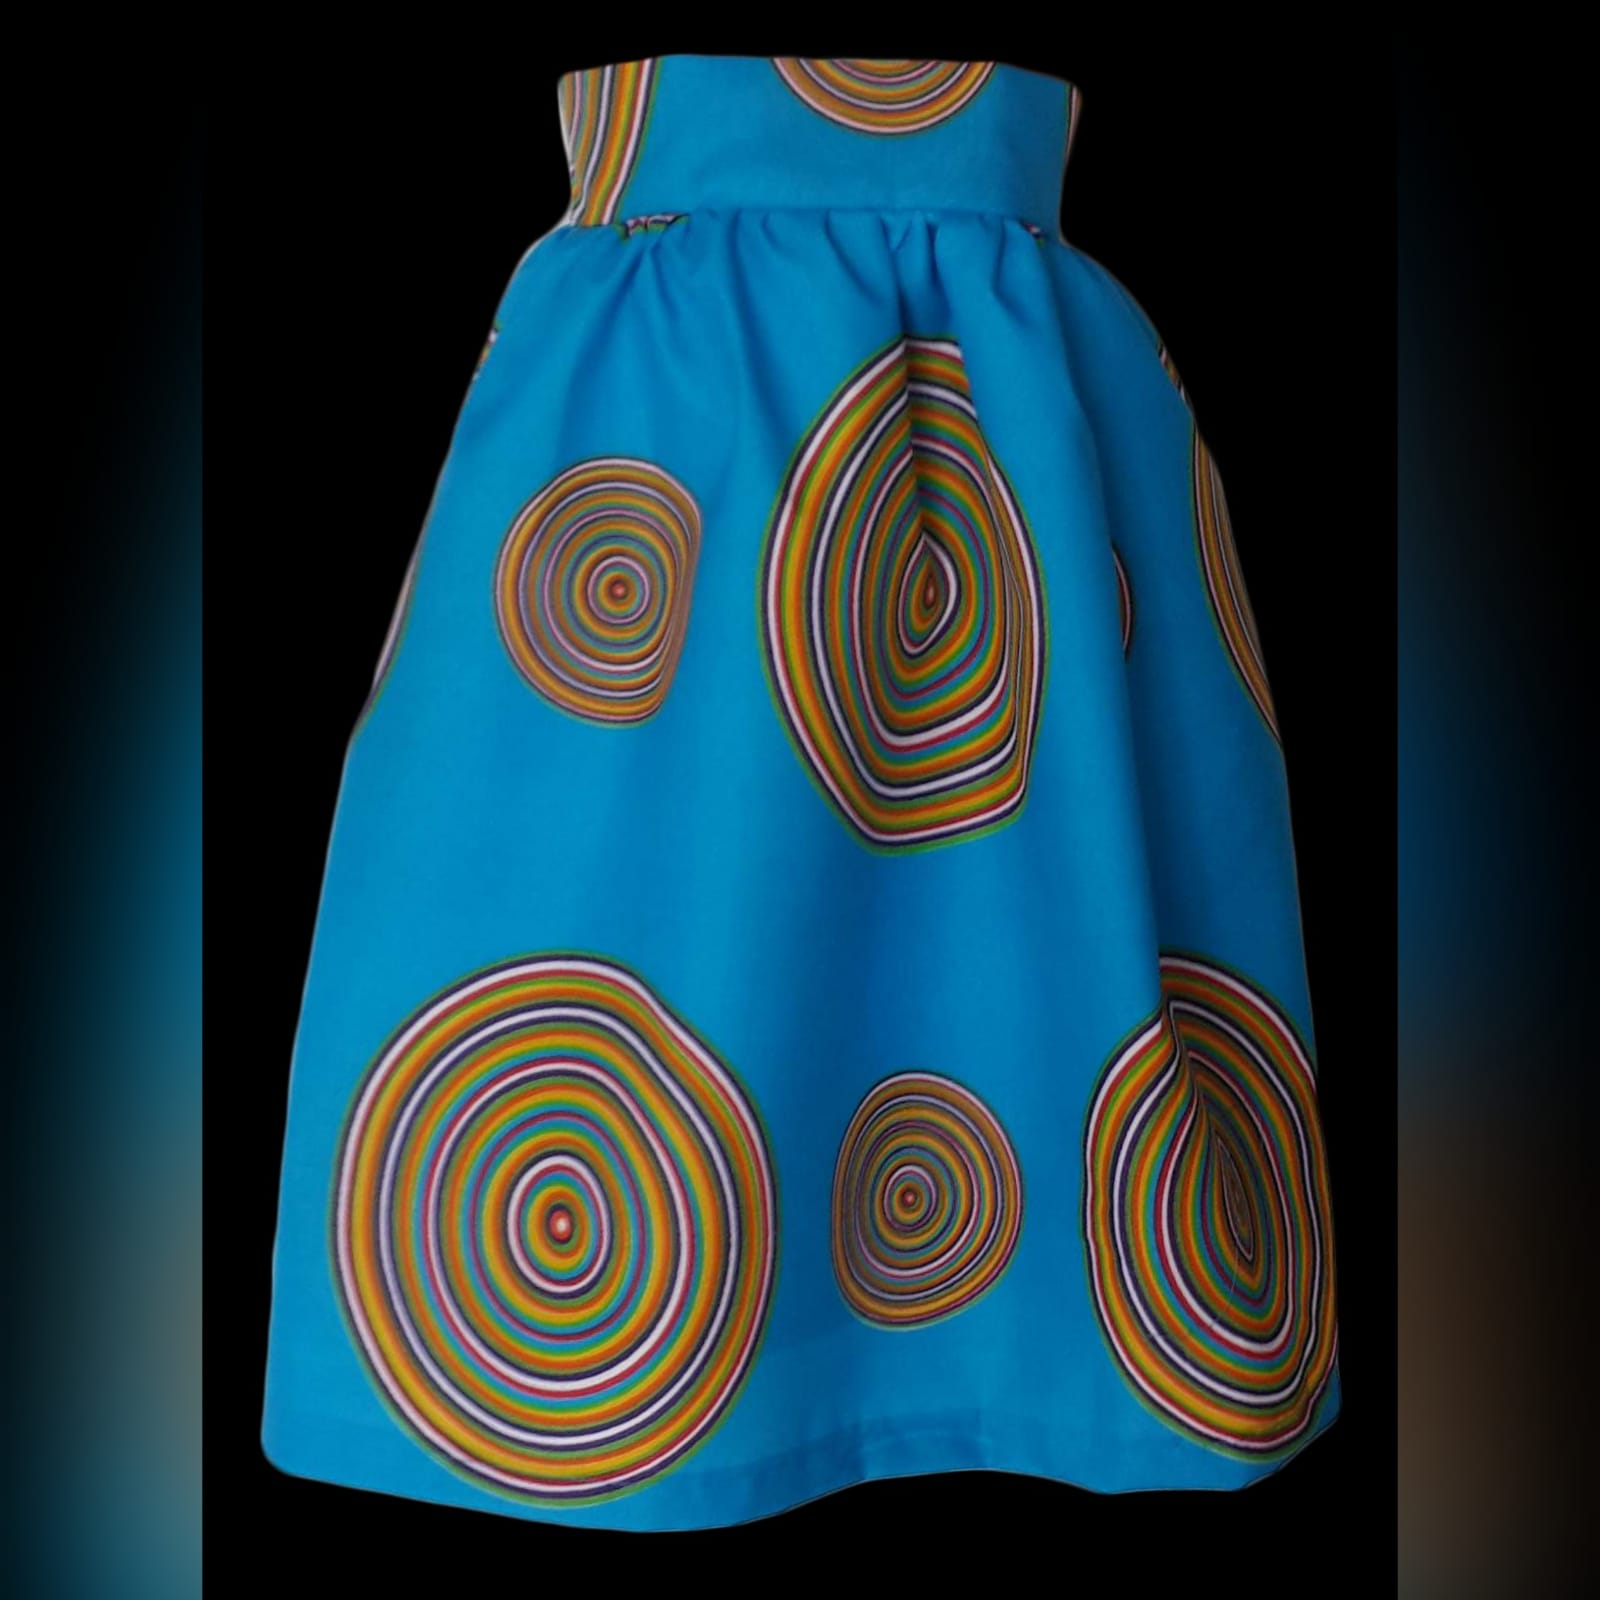 Matching venda traditional outfits for the family 4 venda traditional matching family items. Ladies high waisted skirt and girls matching skirt. With men's matching shirt.